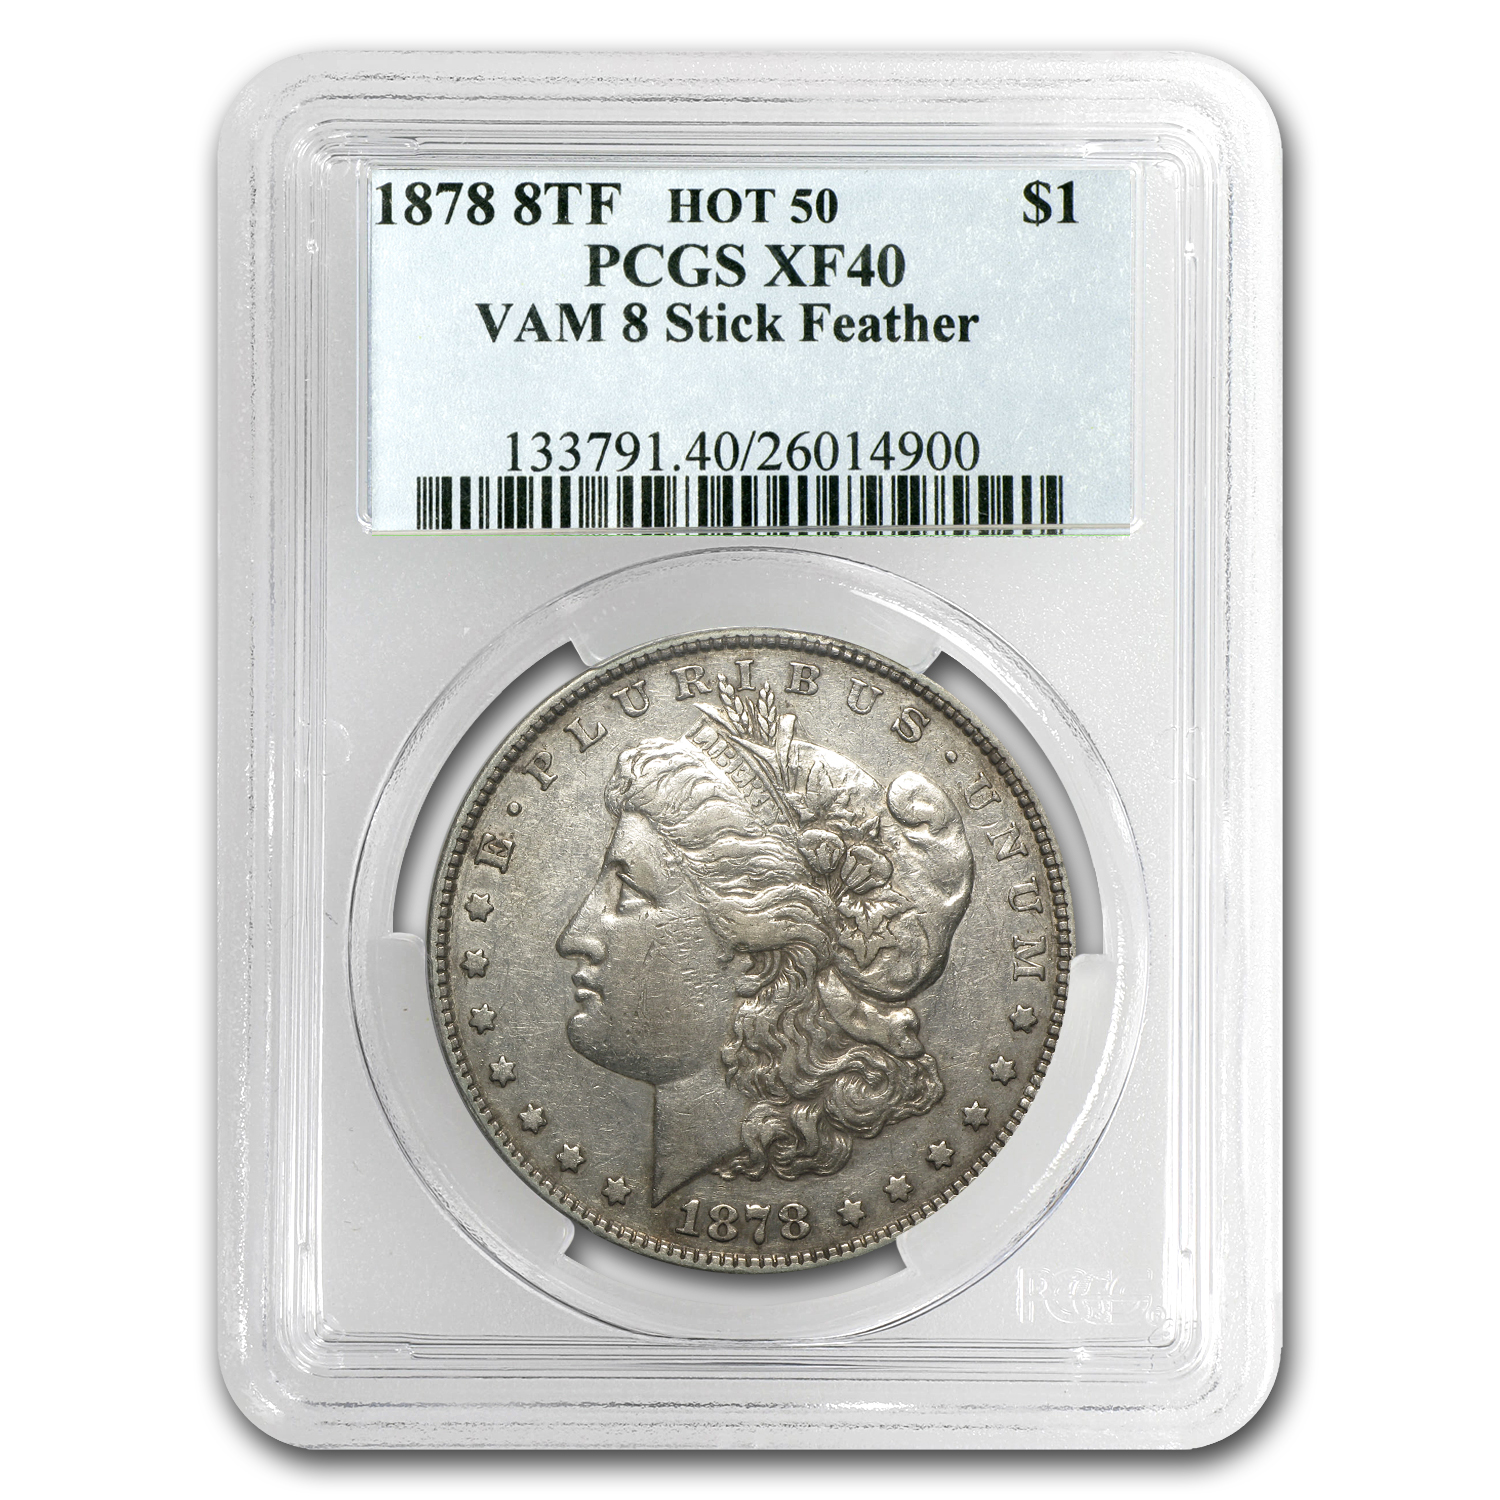 1878 Morgan Dollar 8 TF XF-40 PCGS (VAM-8, Stick Feather, Hot-50)